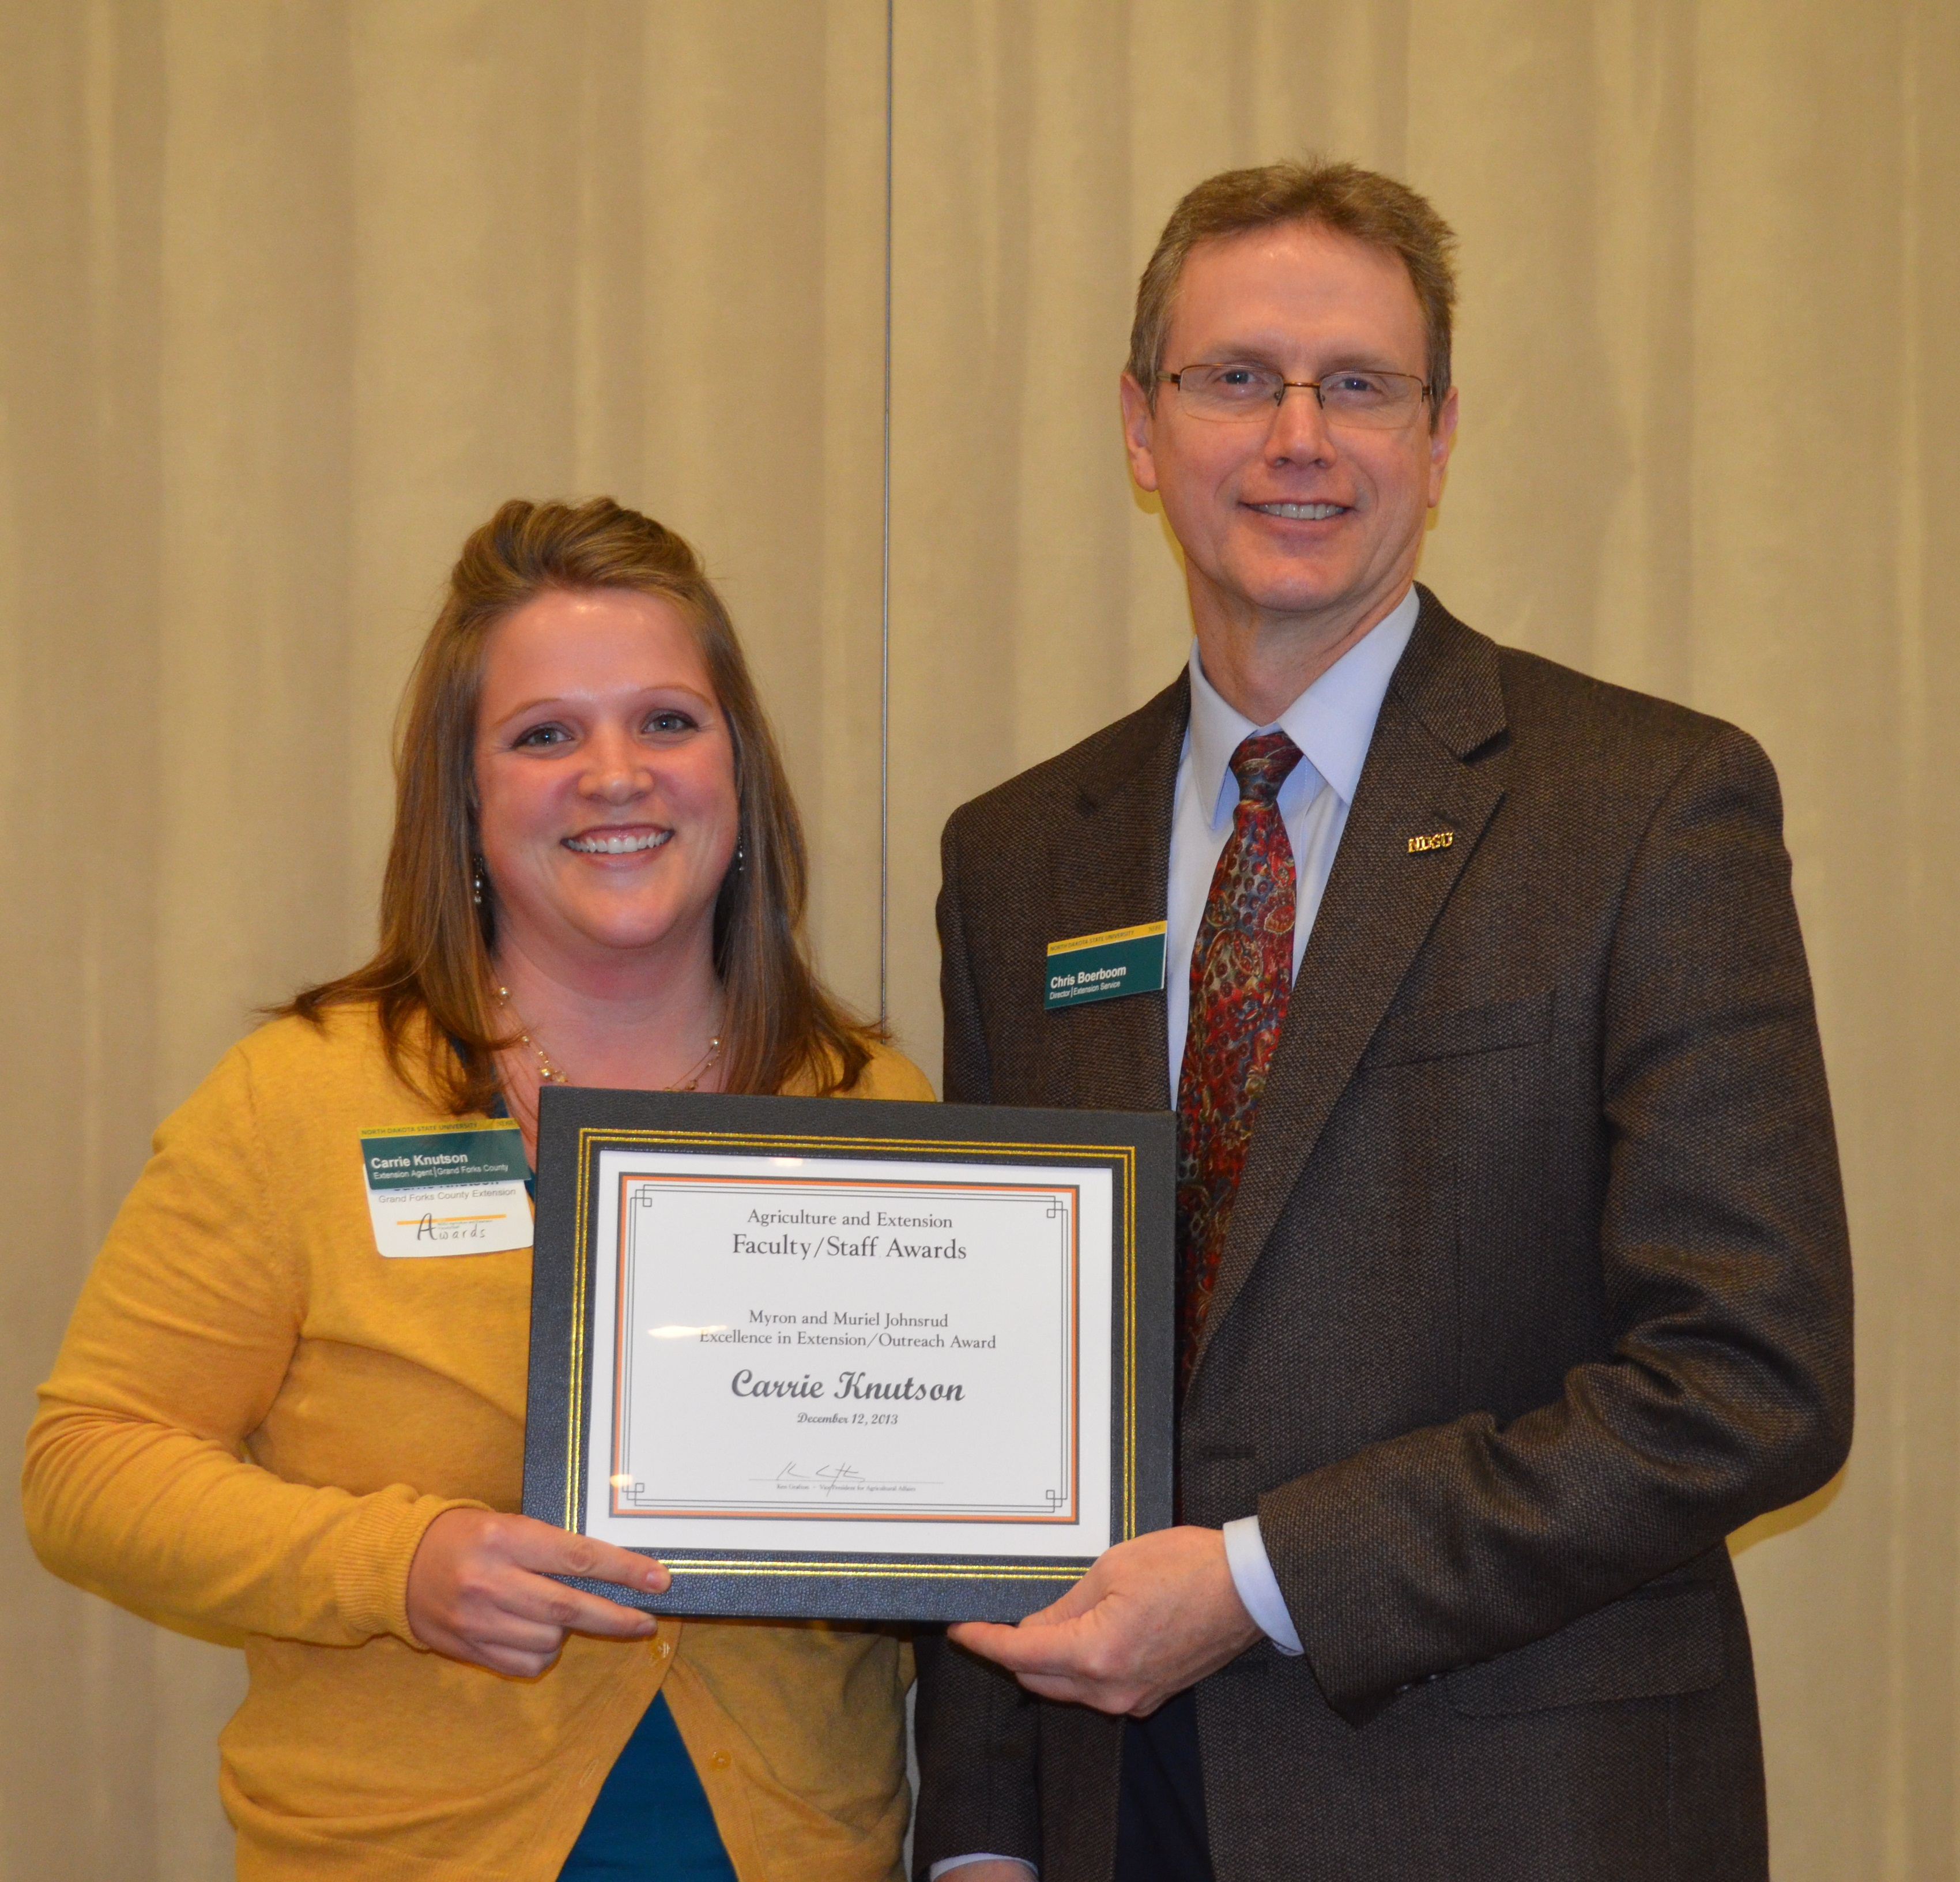 Carrie Knutson, Extension agent, Grand Forks County, receives the Myron and Muriel Johnsrud Excellence in Extension/Outreach Award from Chris Boerboom, director of the NDSU Extension Service.